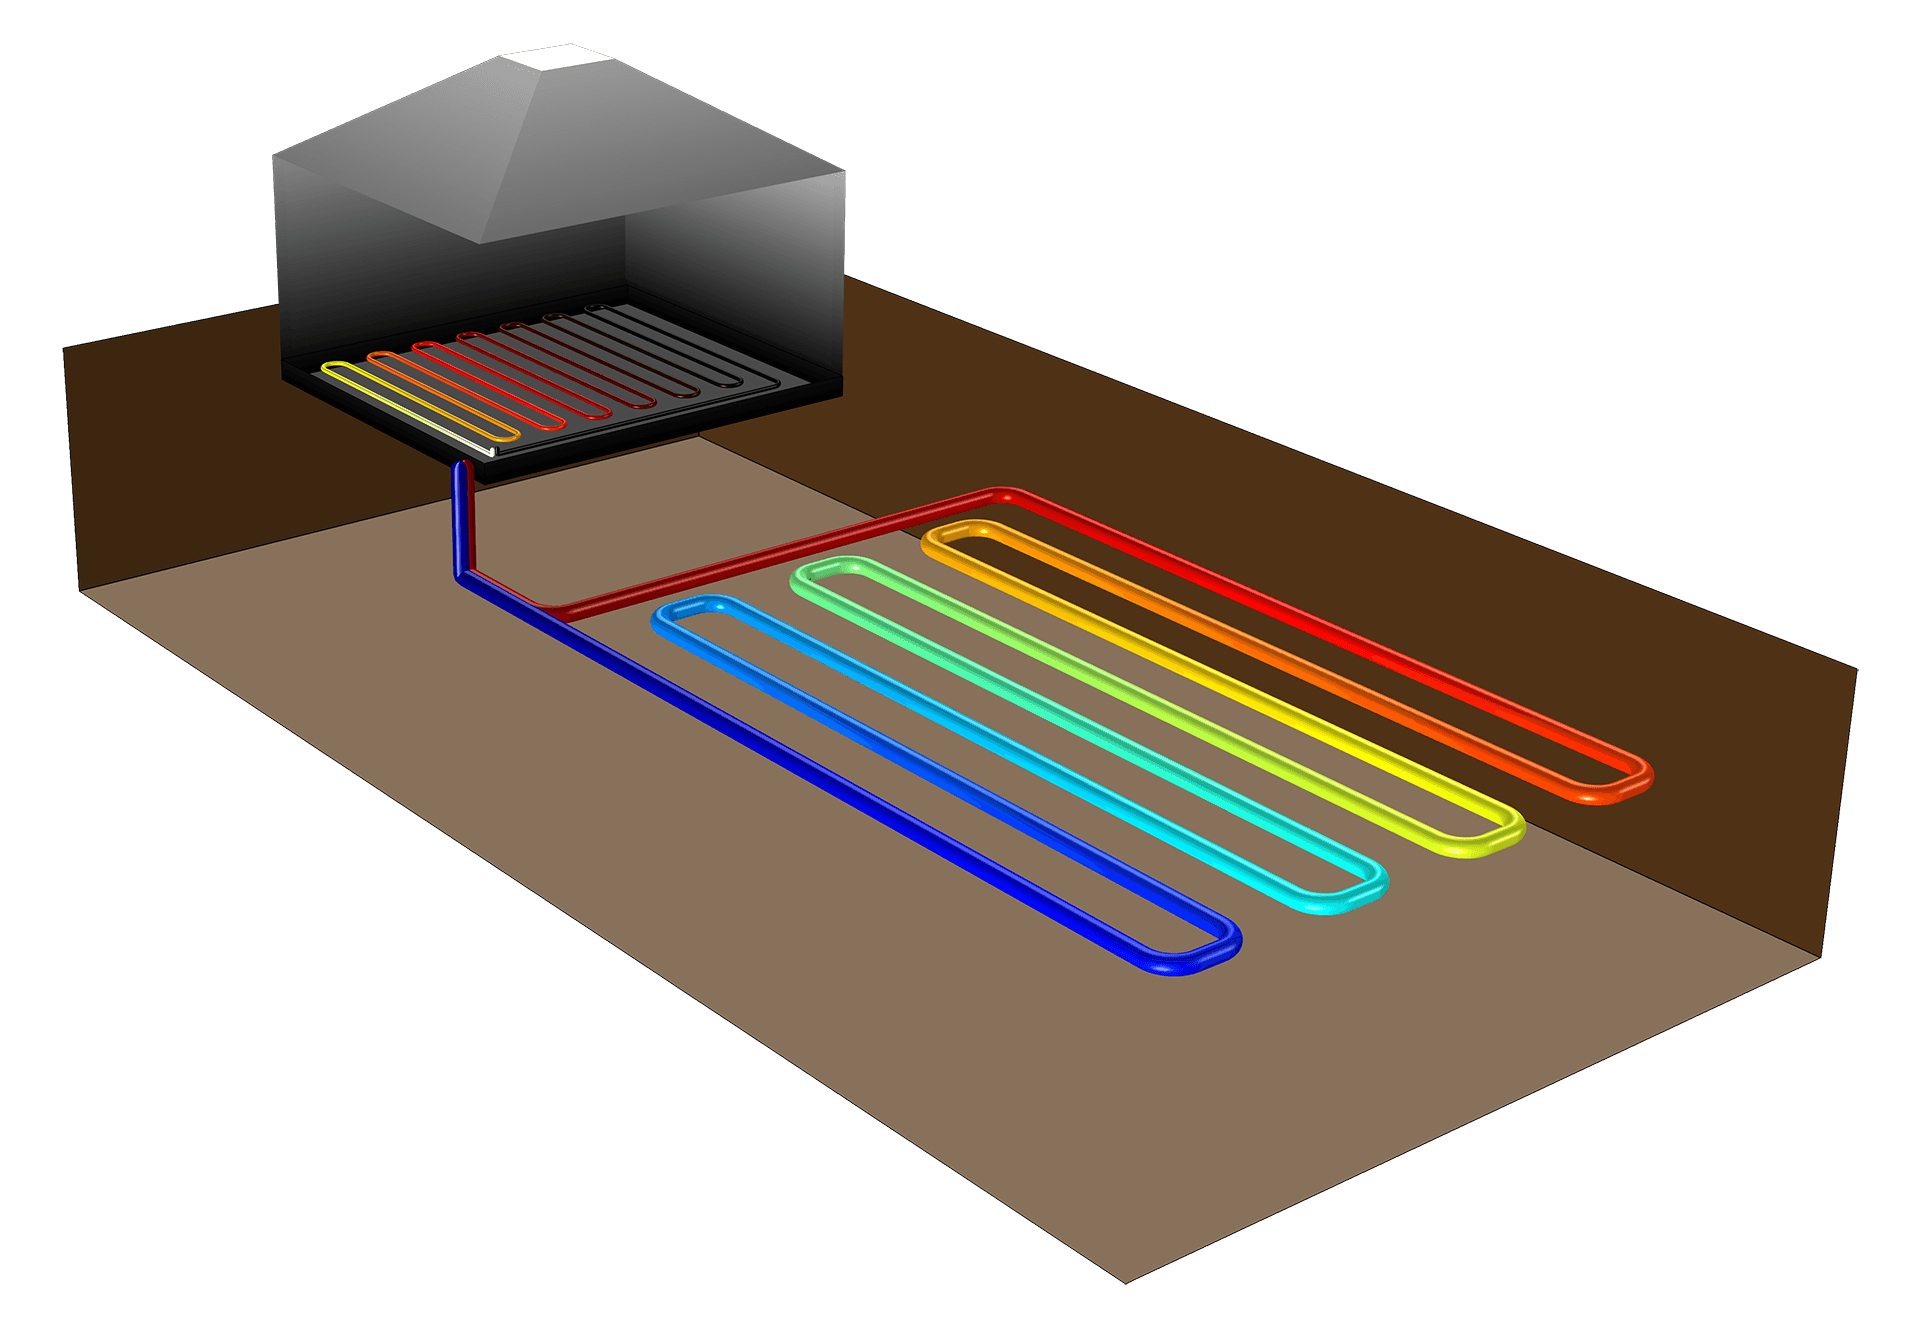 Ground heat recovery is an energy efficient method to supply houses with heat, where heat collectors exist in a subsurface environment. This model compares different patterns embedded in the subsurface with typical thermal properties of an uppermost soil layer in a garden.